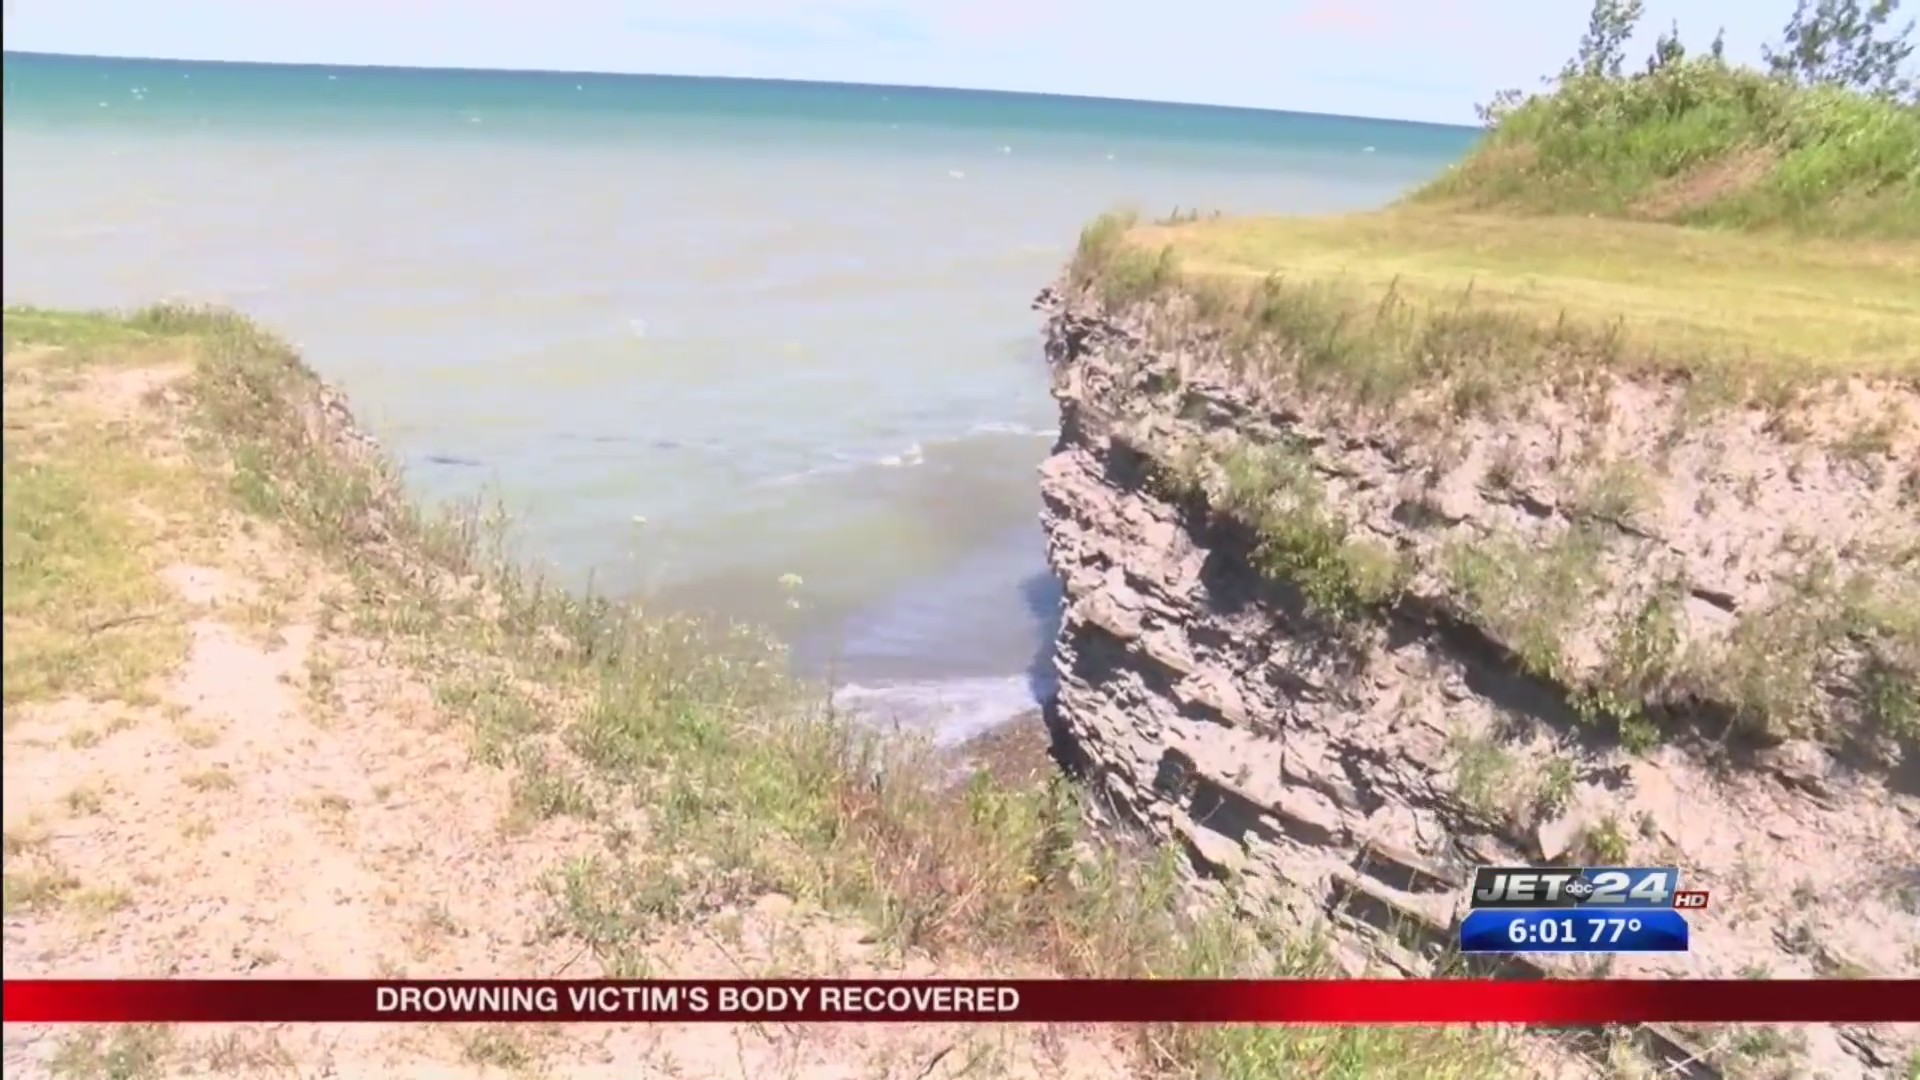 Rough water conditions likely cause in cliff diving accident